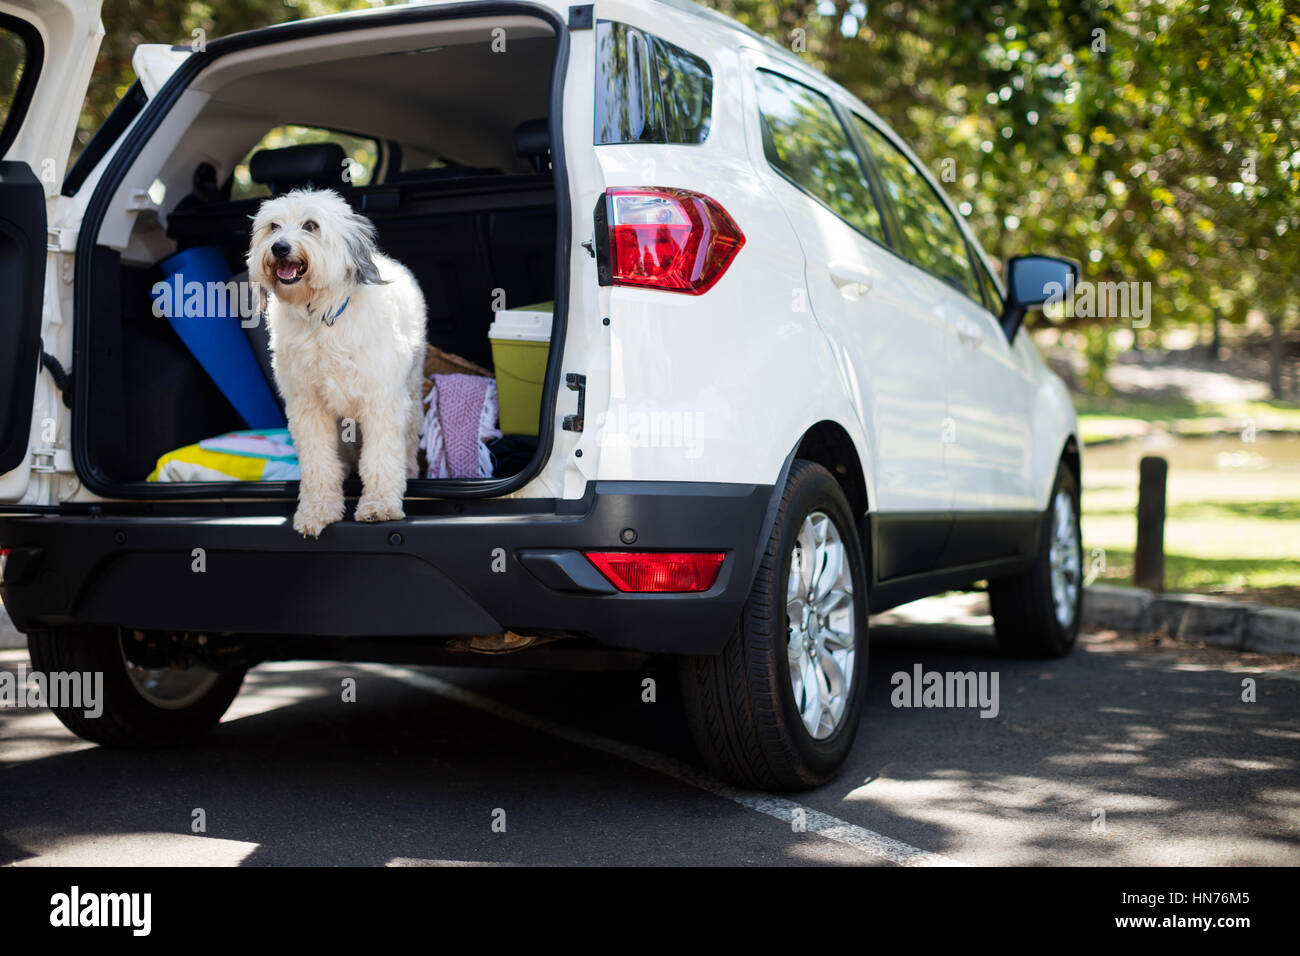 Pet in car trunk at park - Stock Image